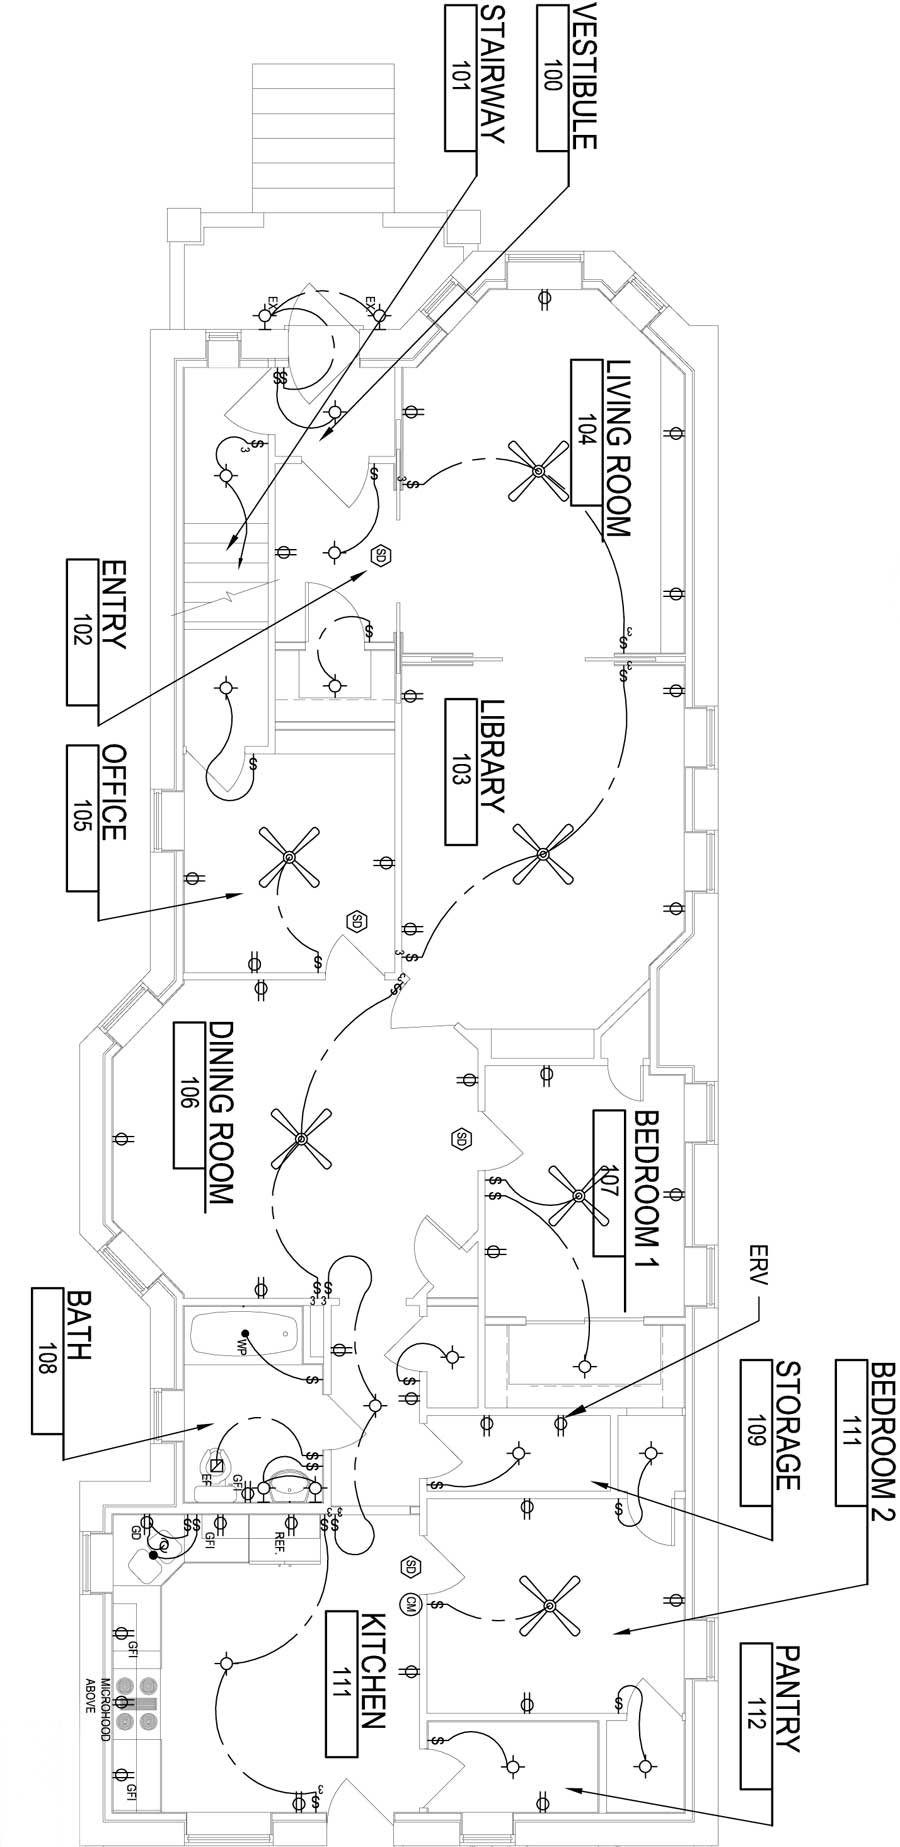 electrical layout  plan view  reshaping our footprint, wiring diagram